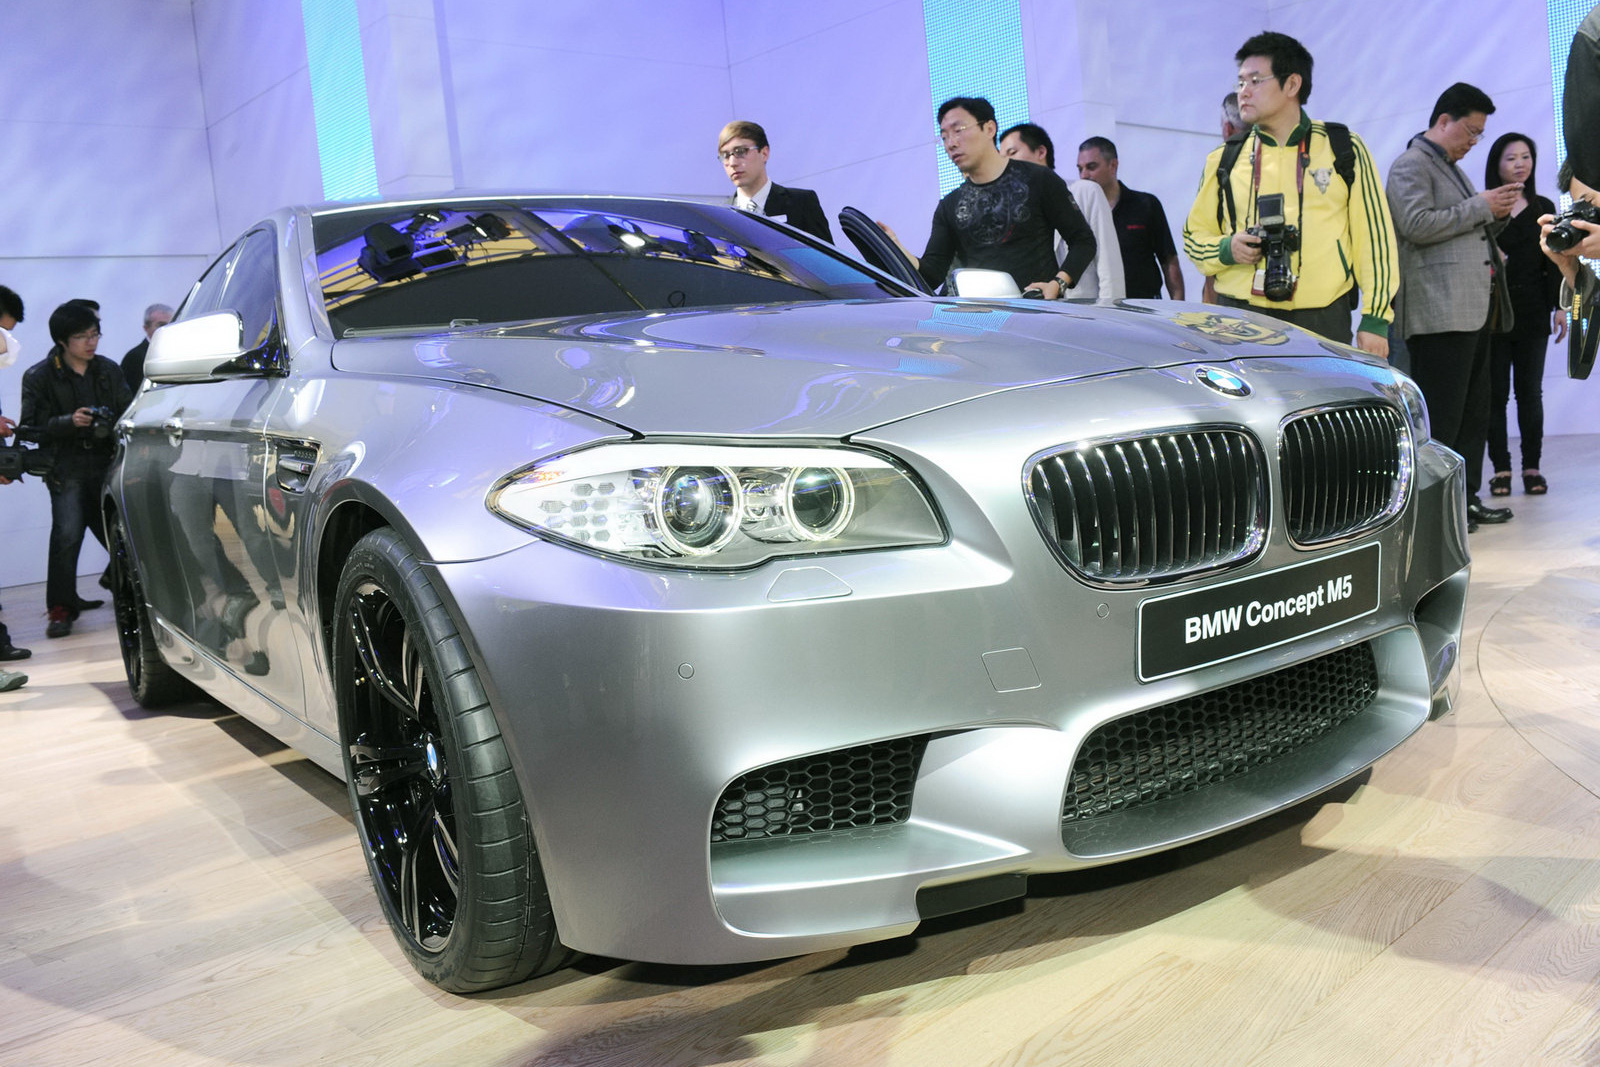 2012 bmw m5 vip preview concept for sale used car for sales in us. Black Bedroom Furniture Sets. Home Design Ideas